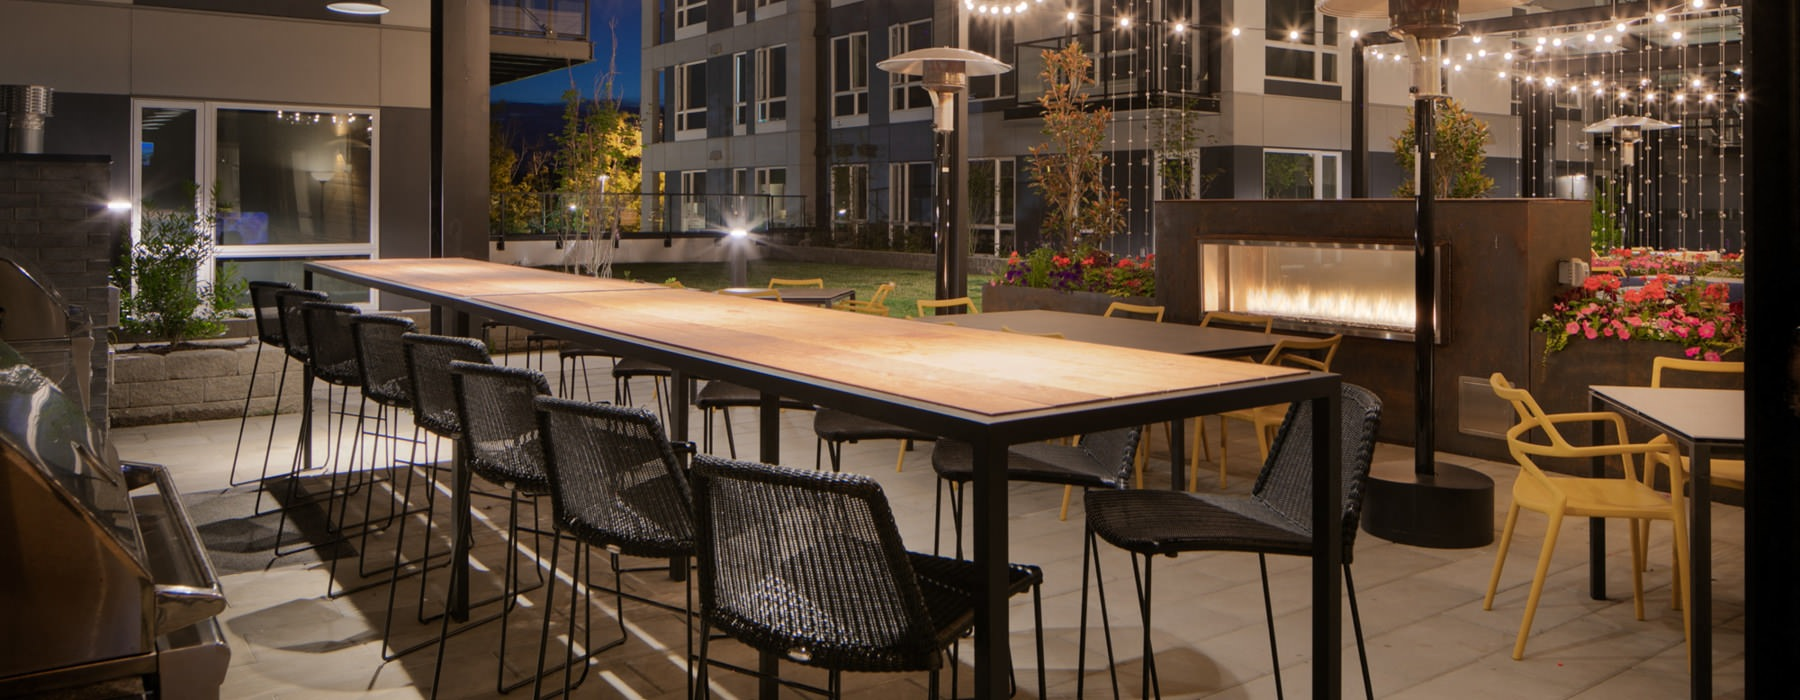 outdoor patio grilling area with long table and chairs in front of fireplace